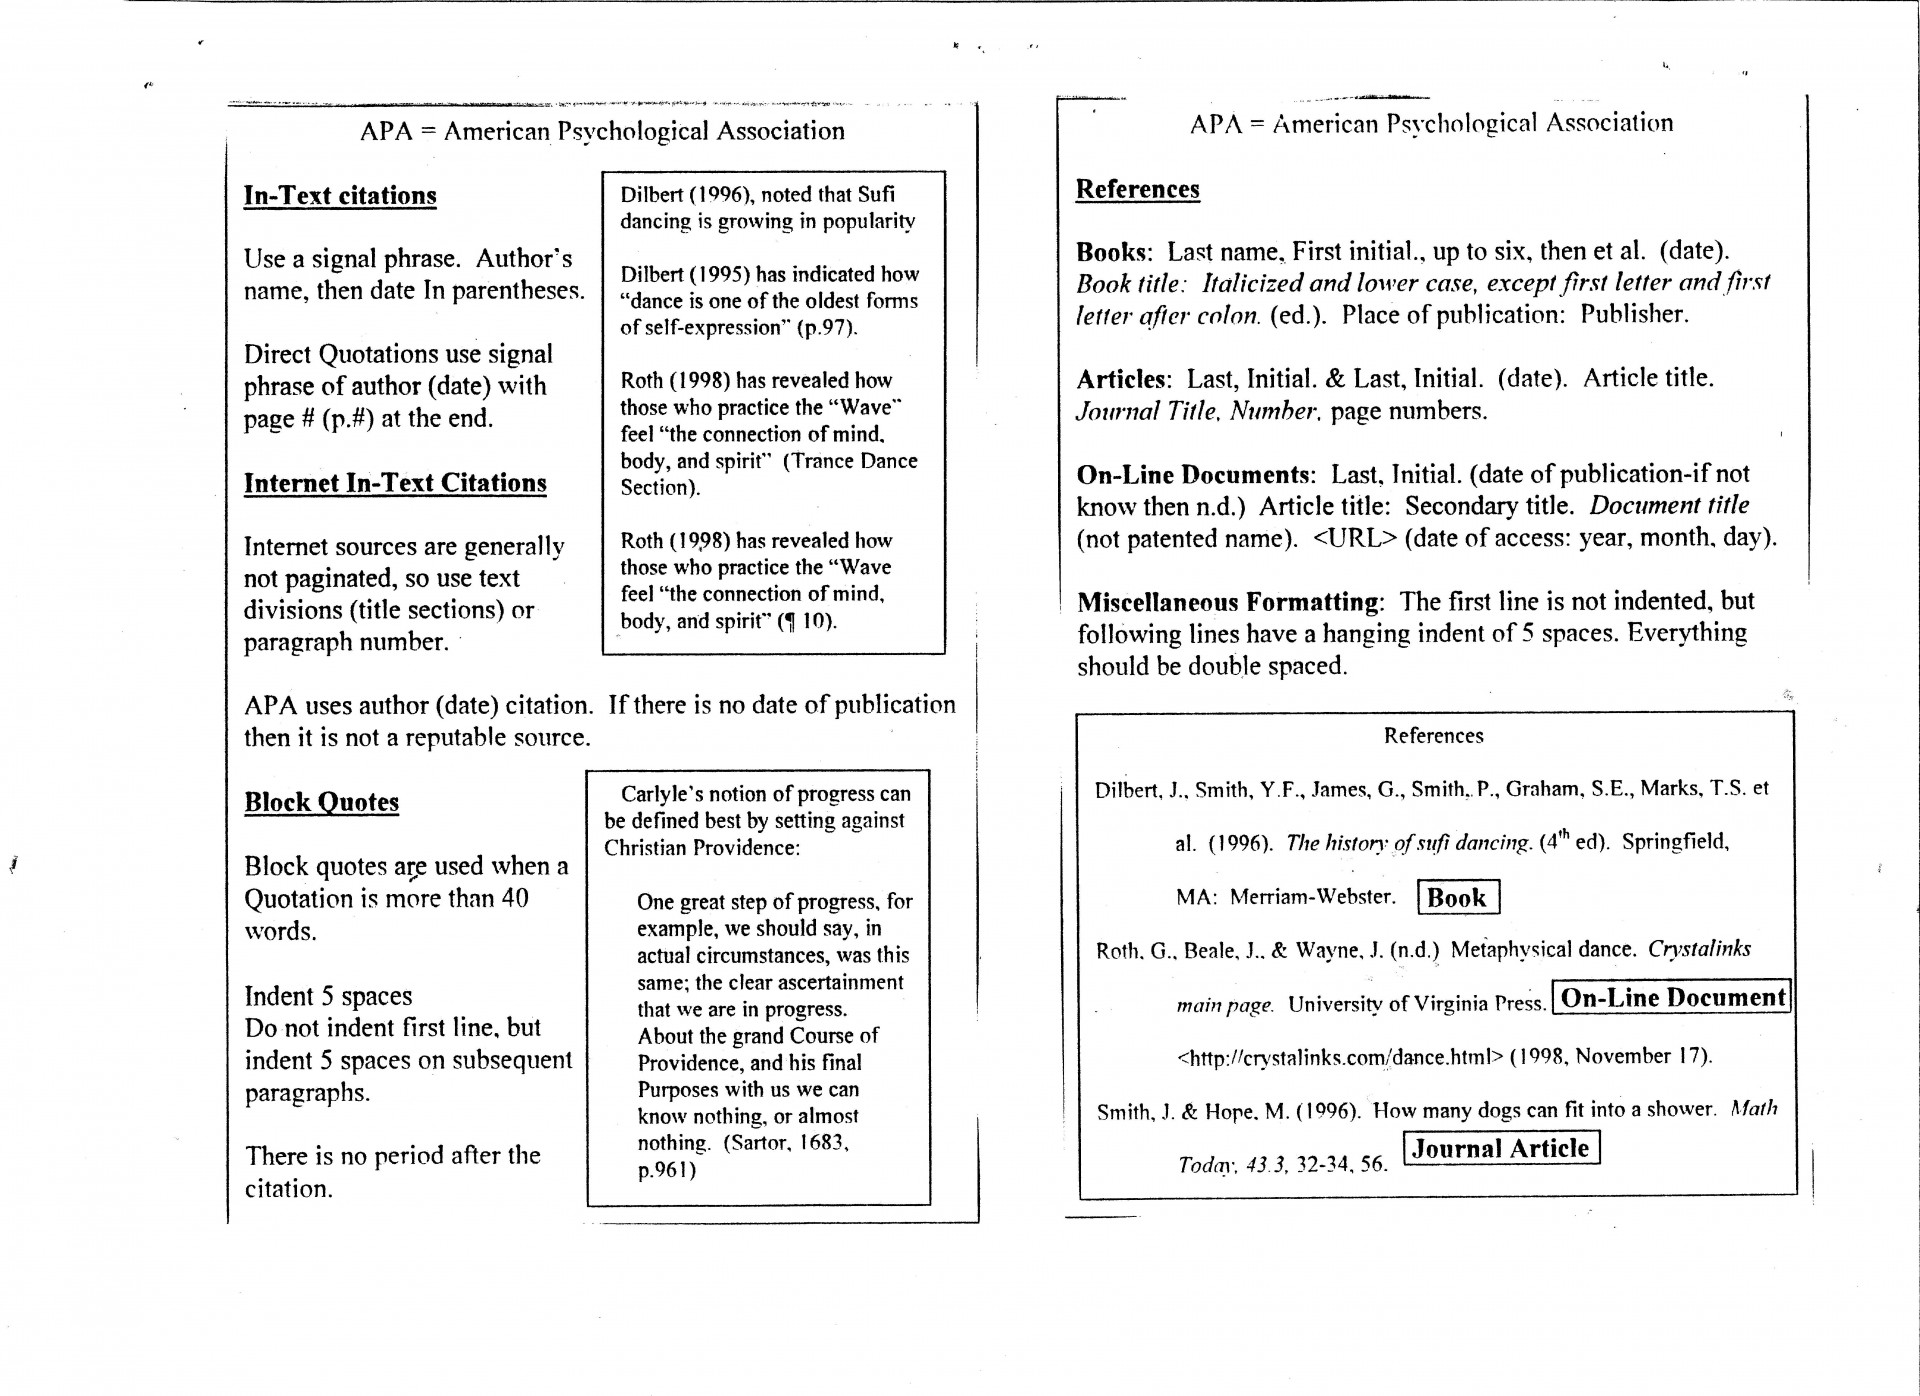 022 Apa Style Research Papermat Examples 618589 Imposing Format For Paper Layout Of A Sample Argumentative Formatting Youtube 1920